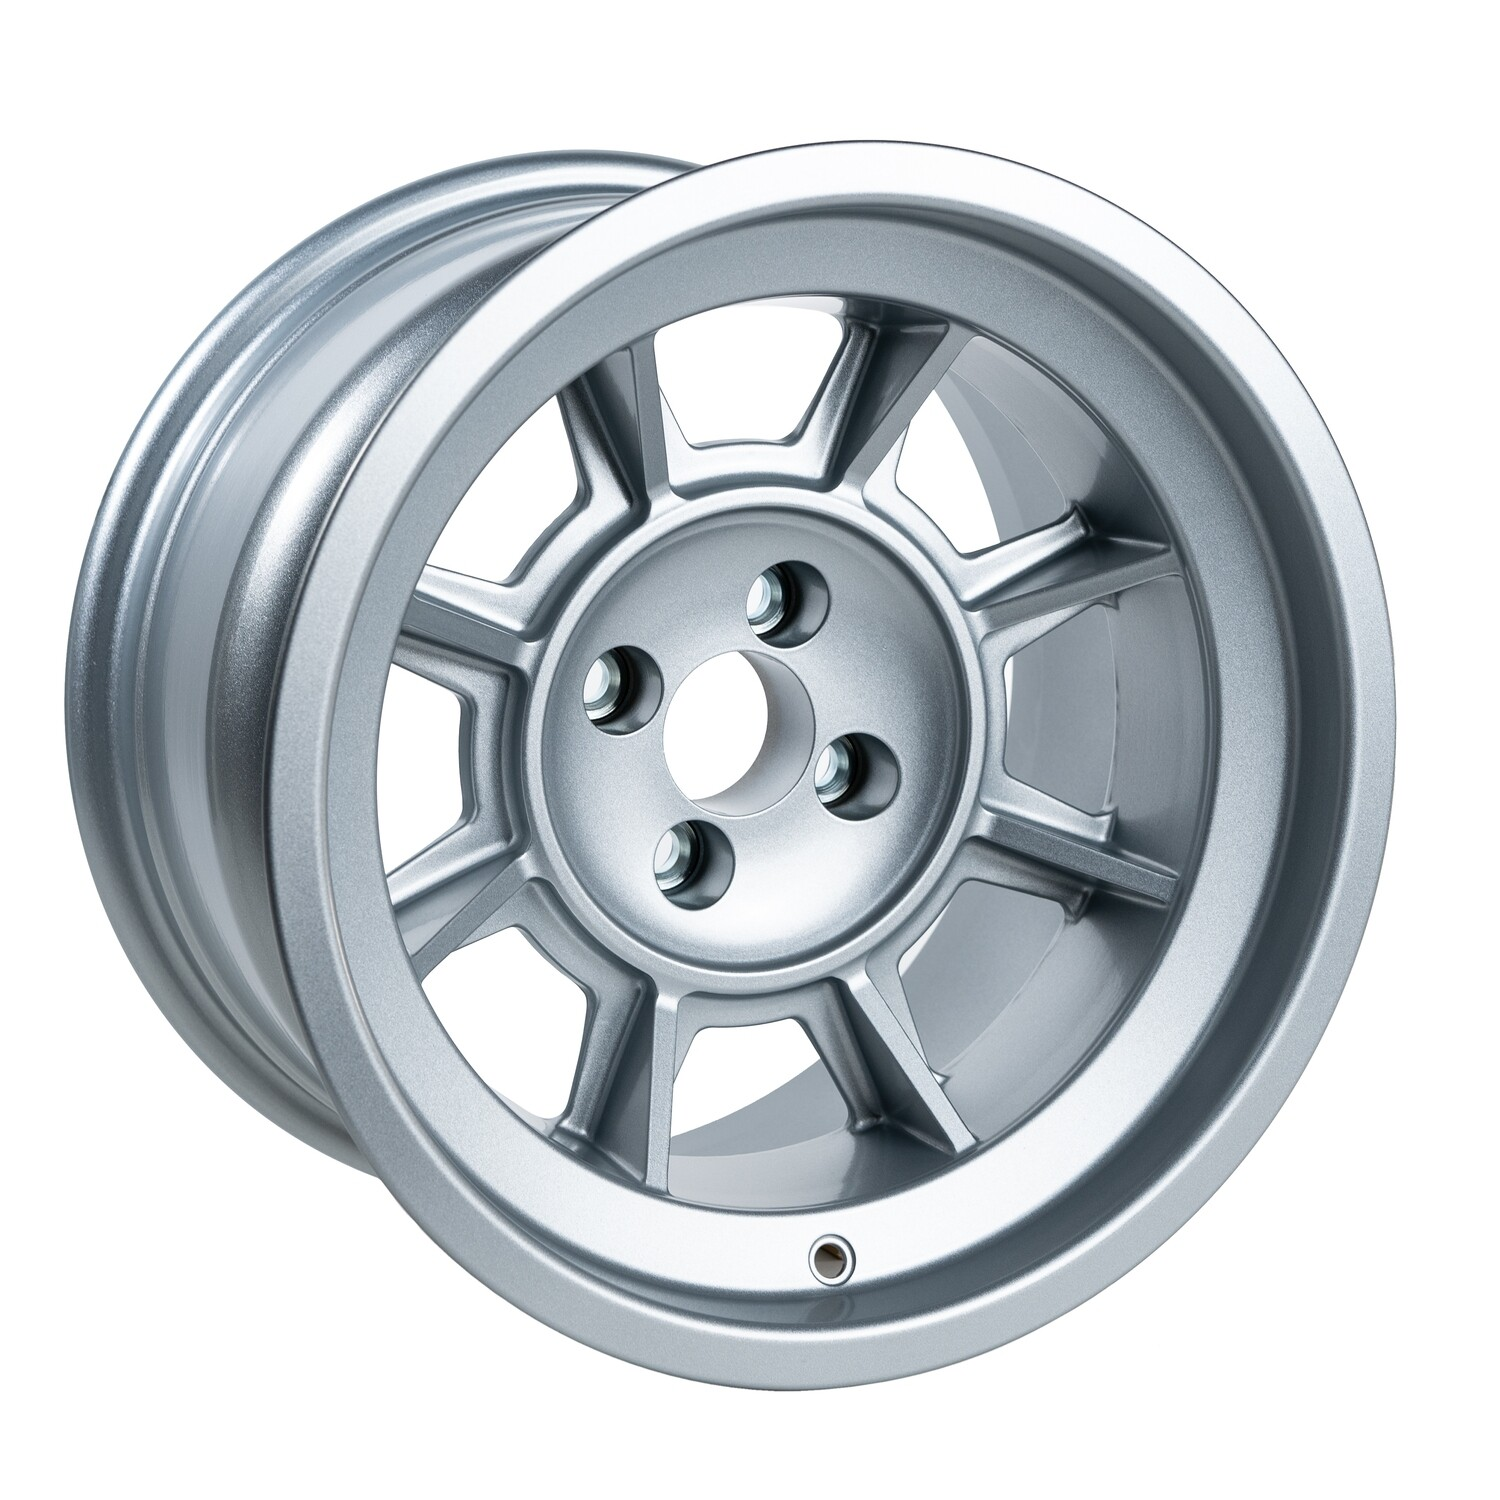 PAG1590F Satin Silver 15 x 9